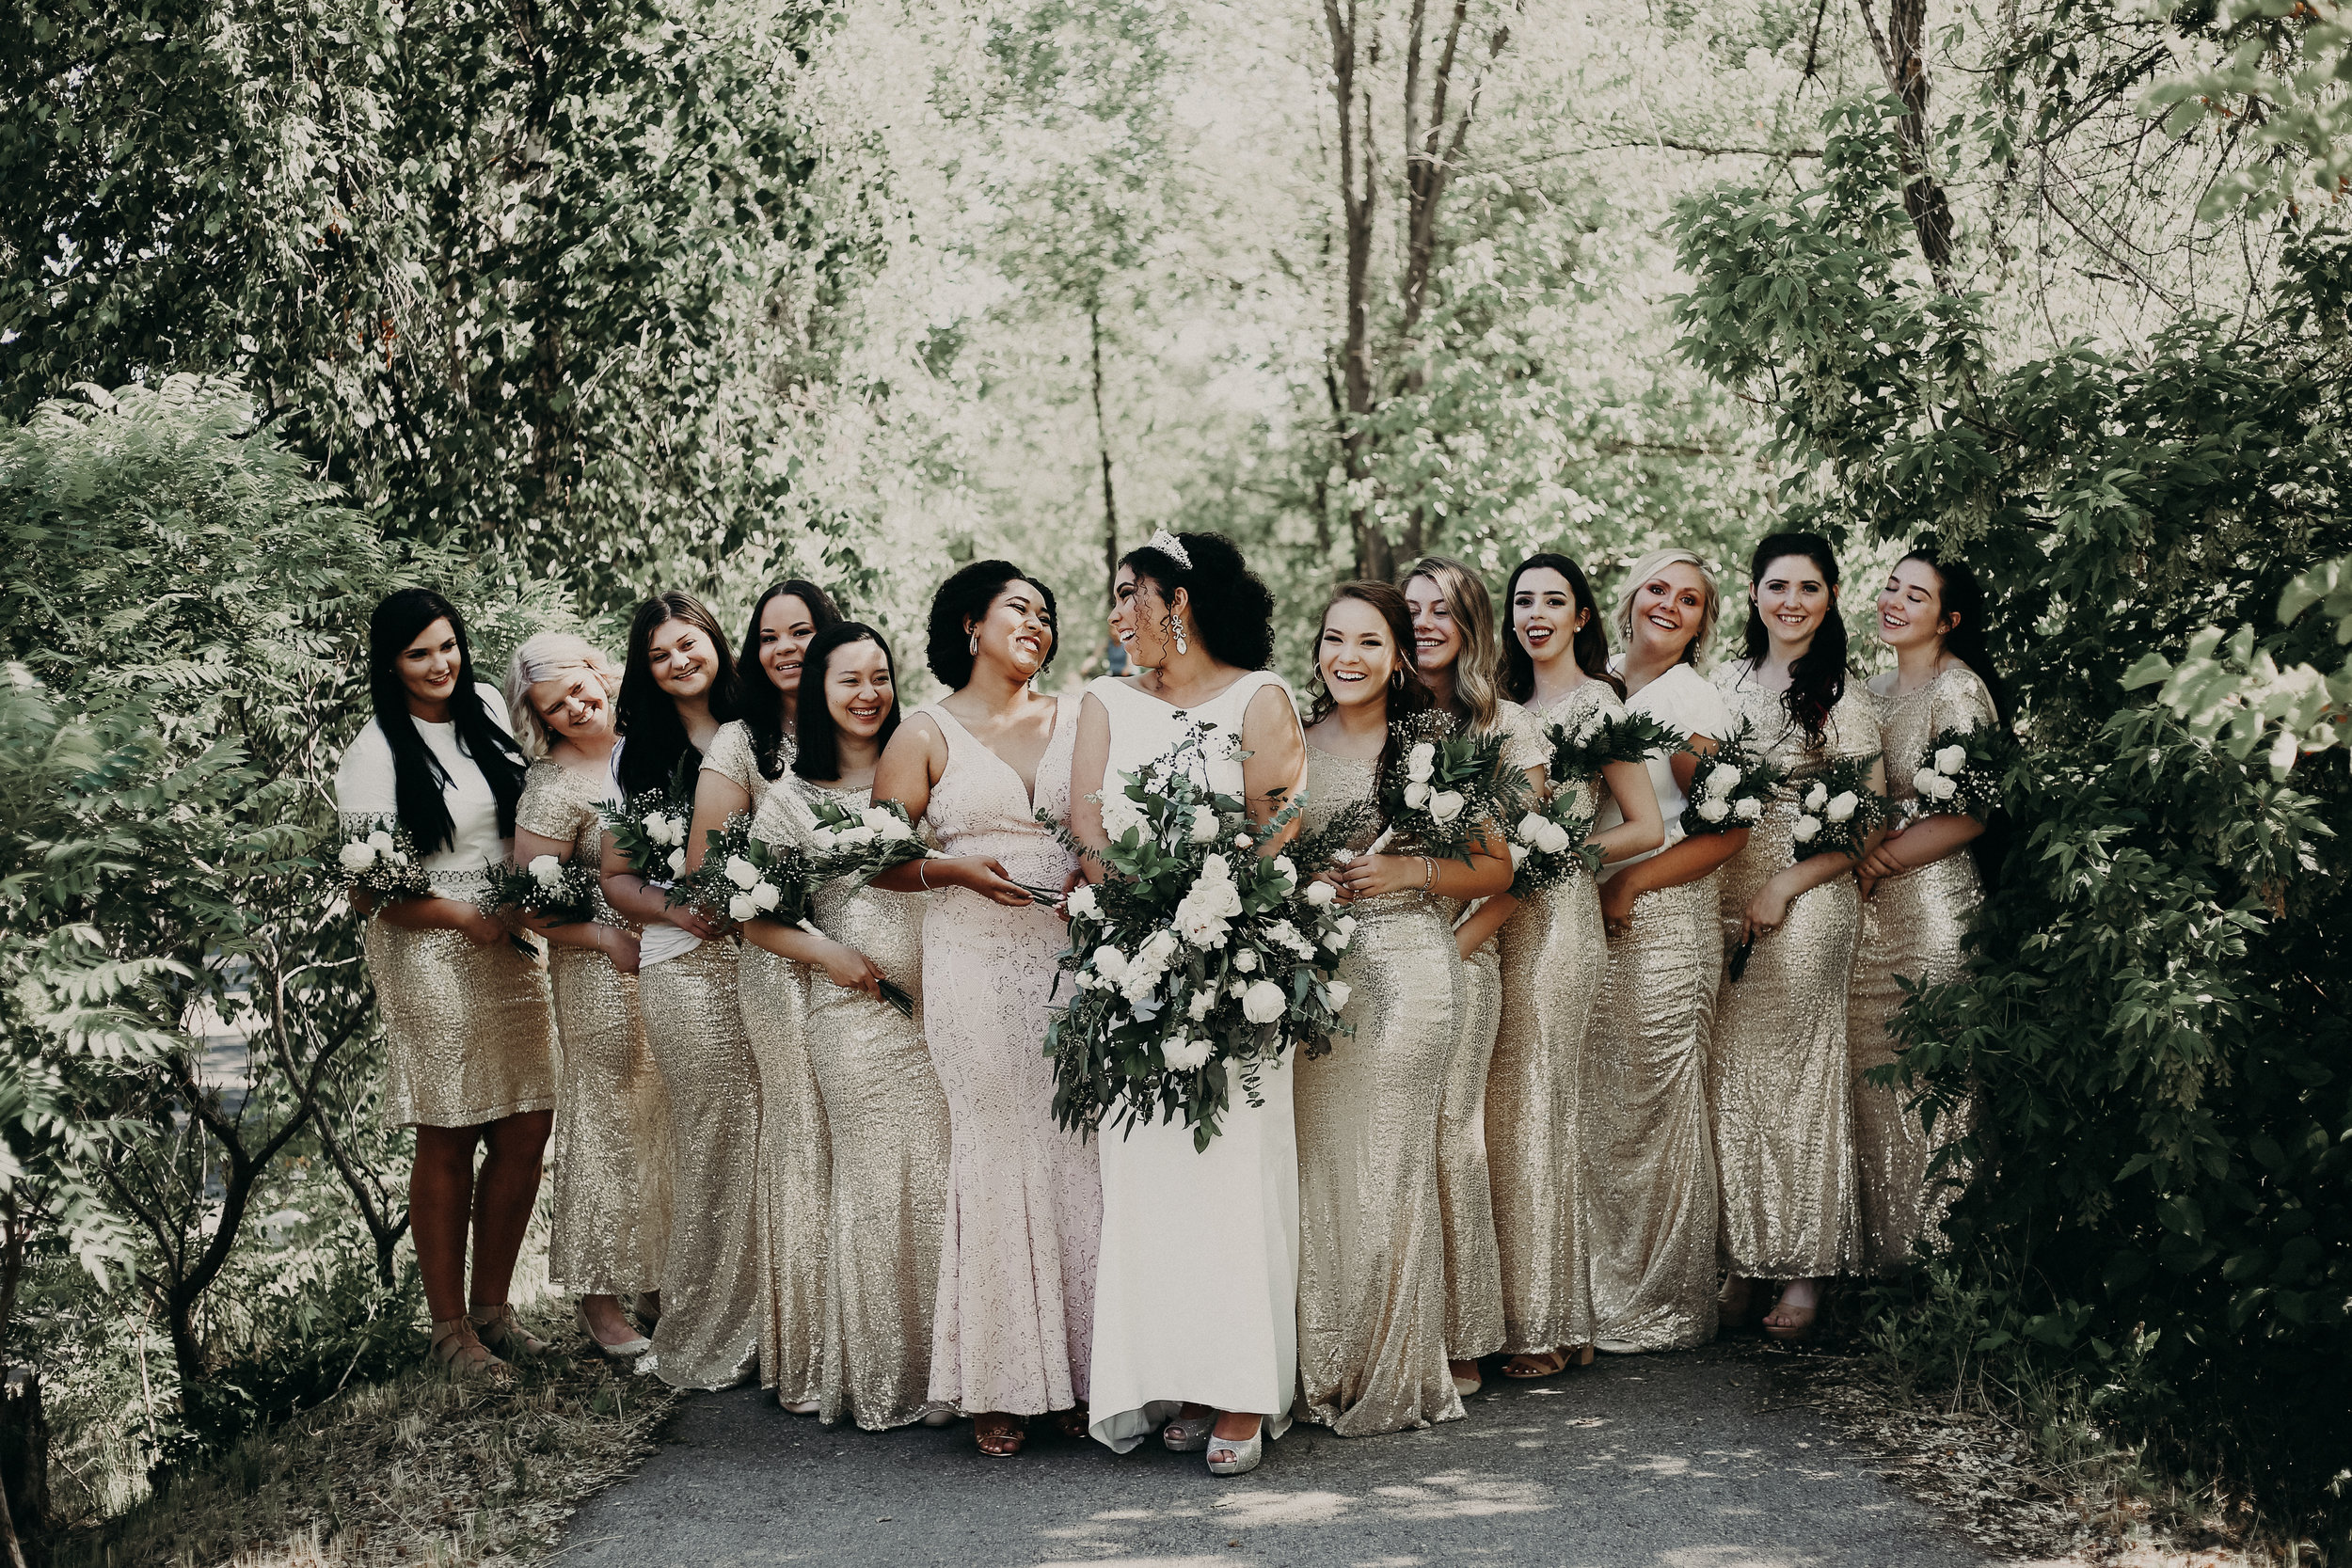 Weddings - your happily ever after